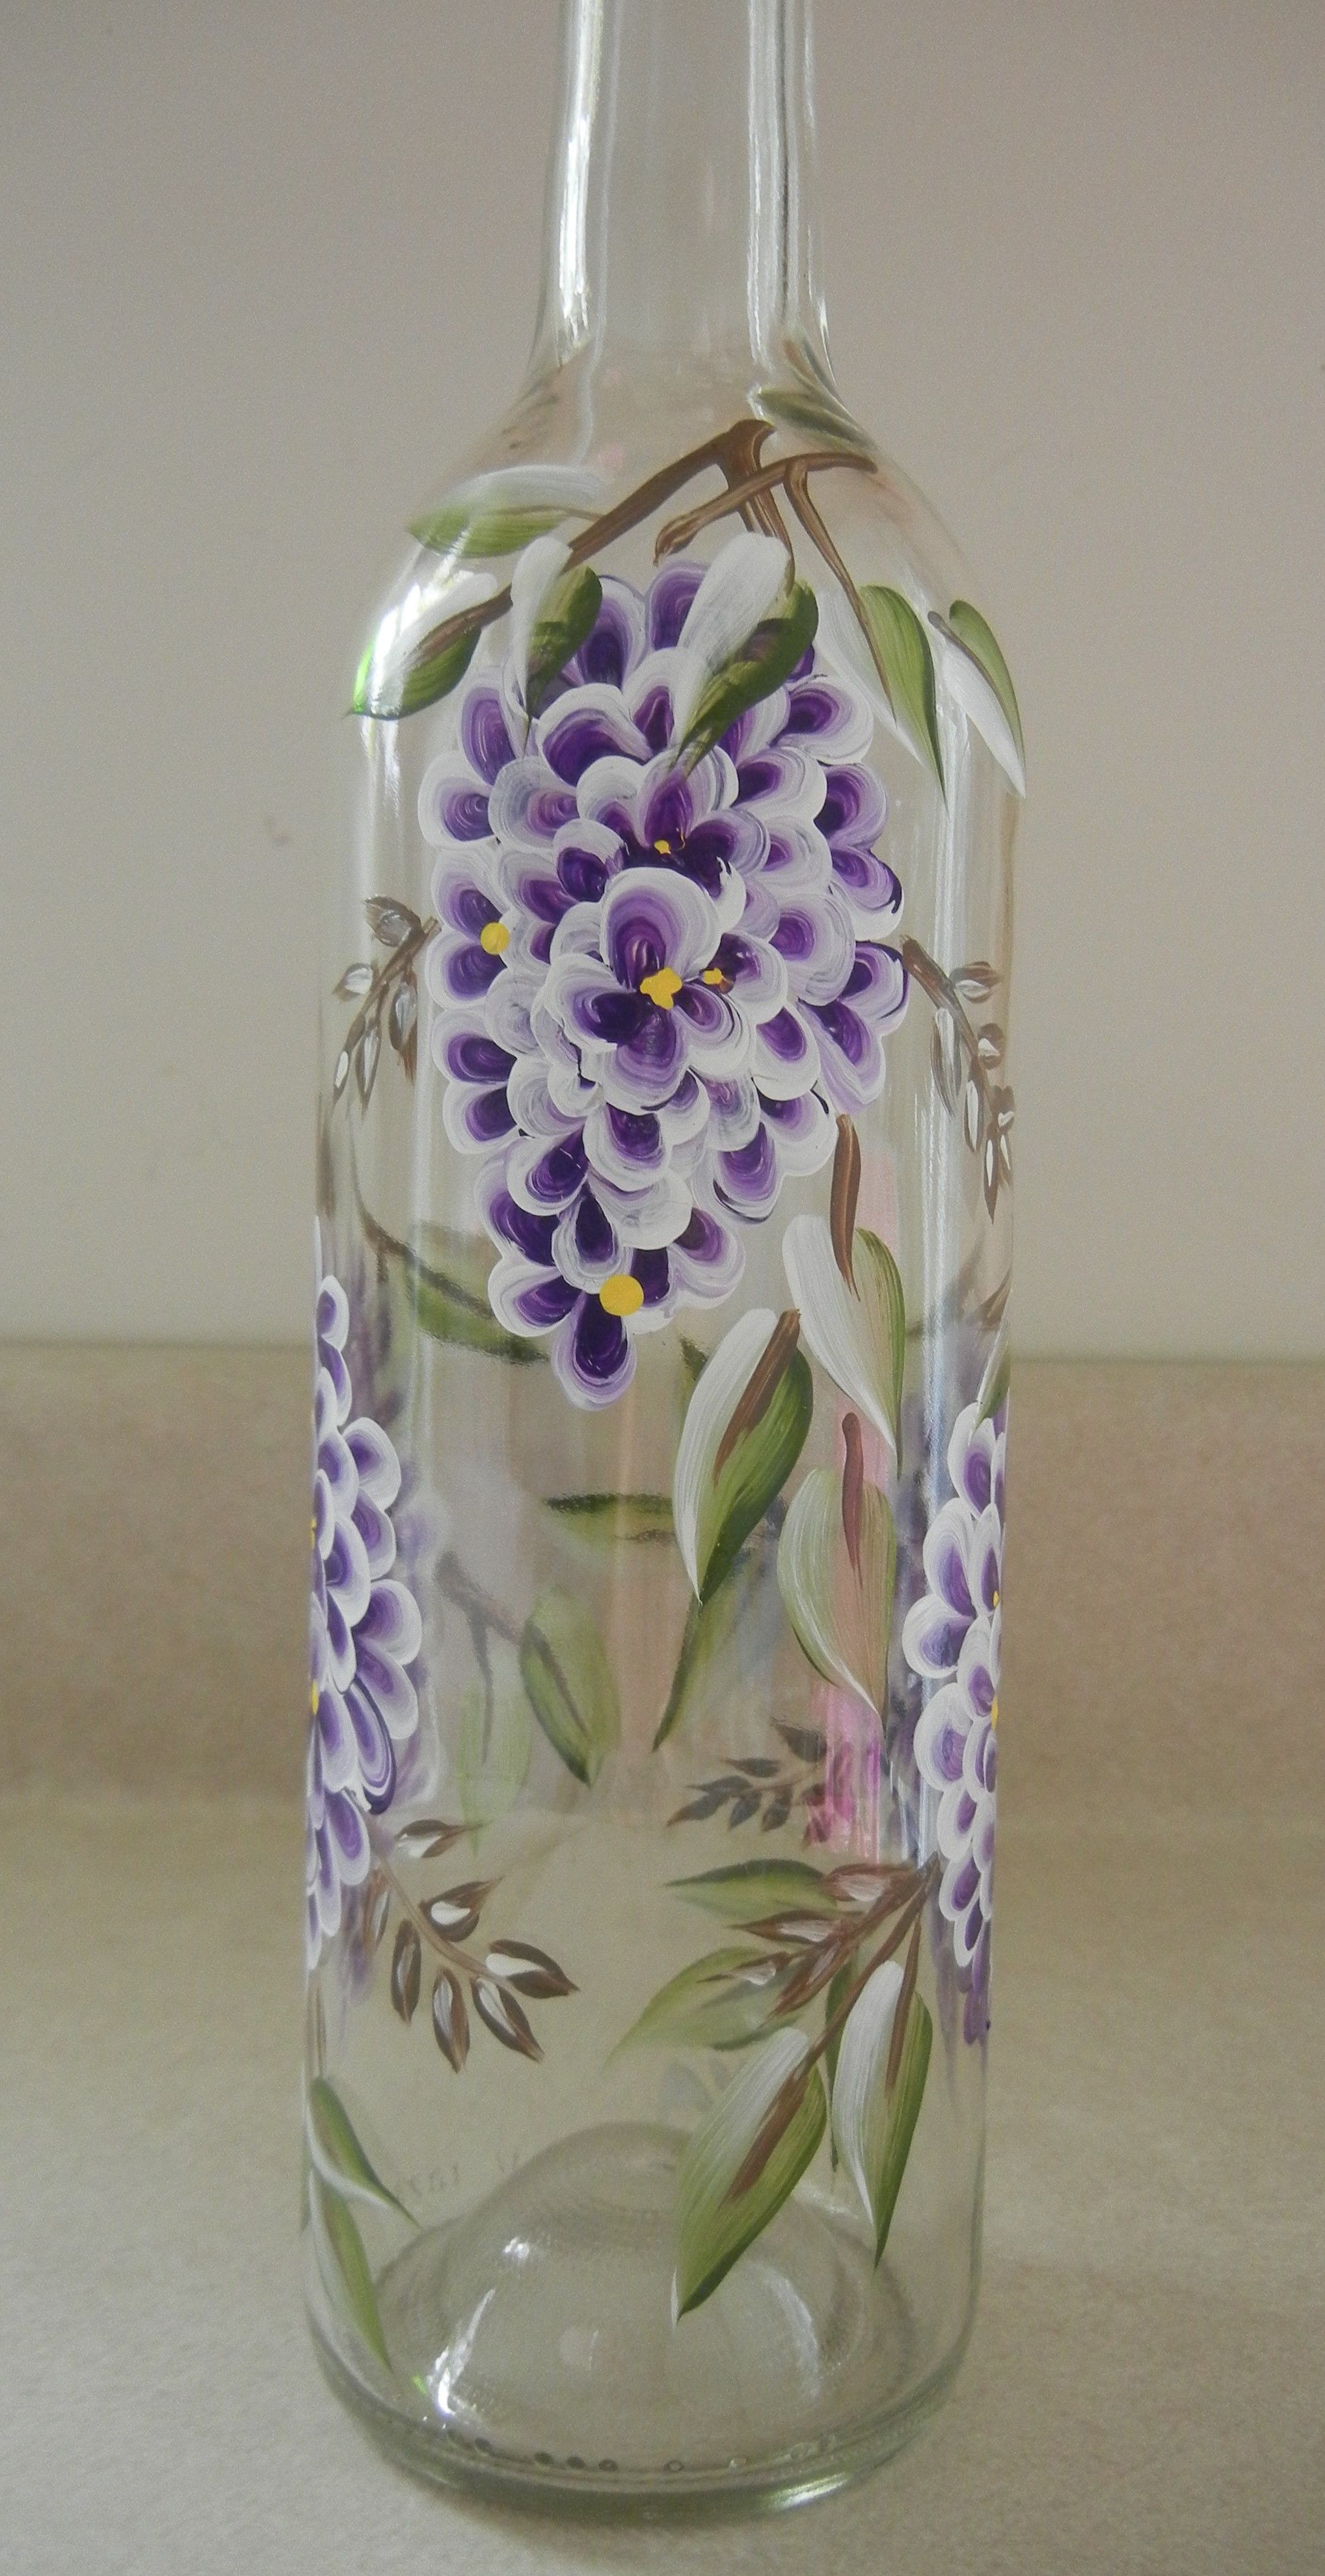 Share for Hand painted bottles